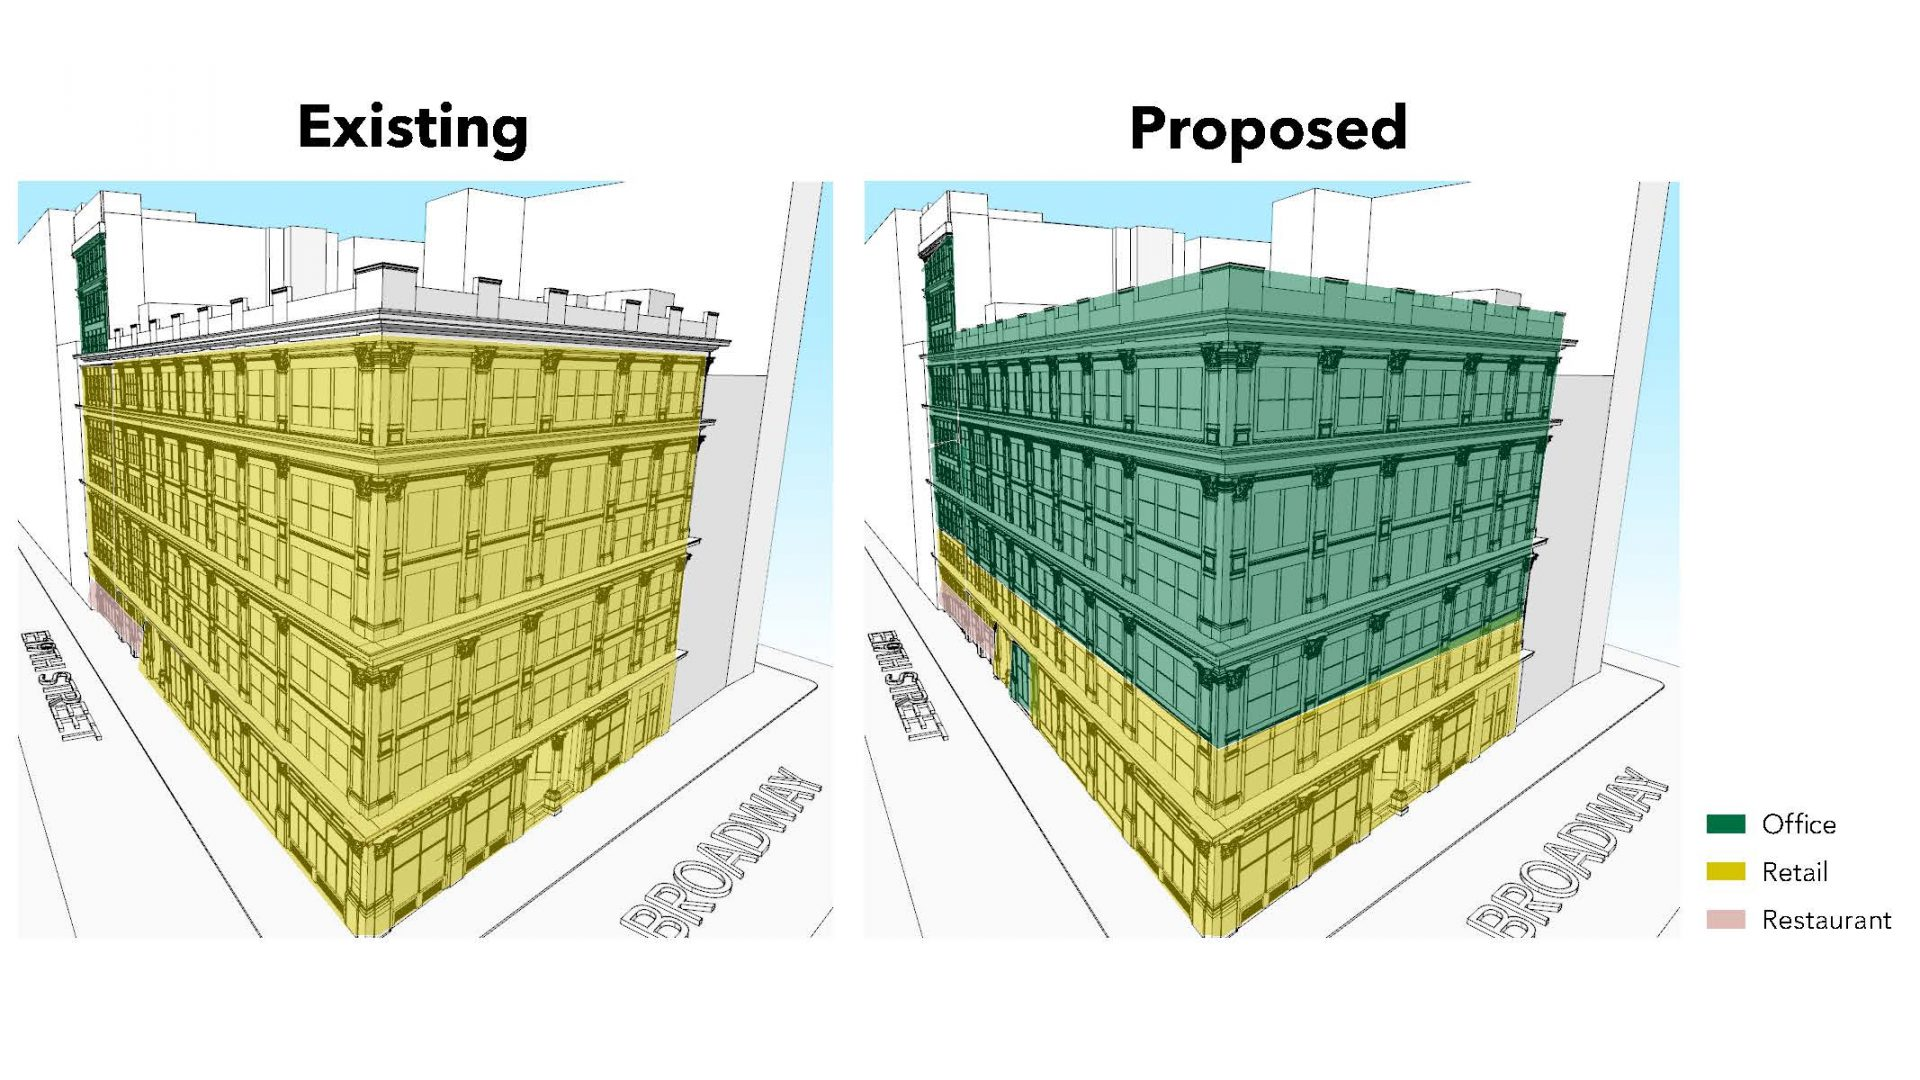 Axonometric view showing retail spaces being converted to office space at 888 Broadway